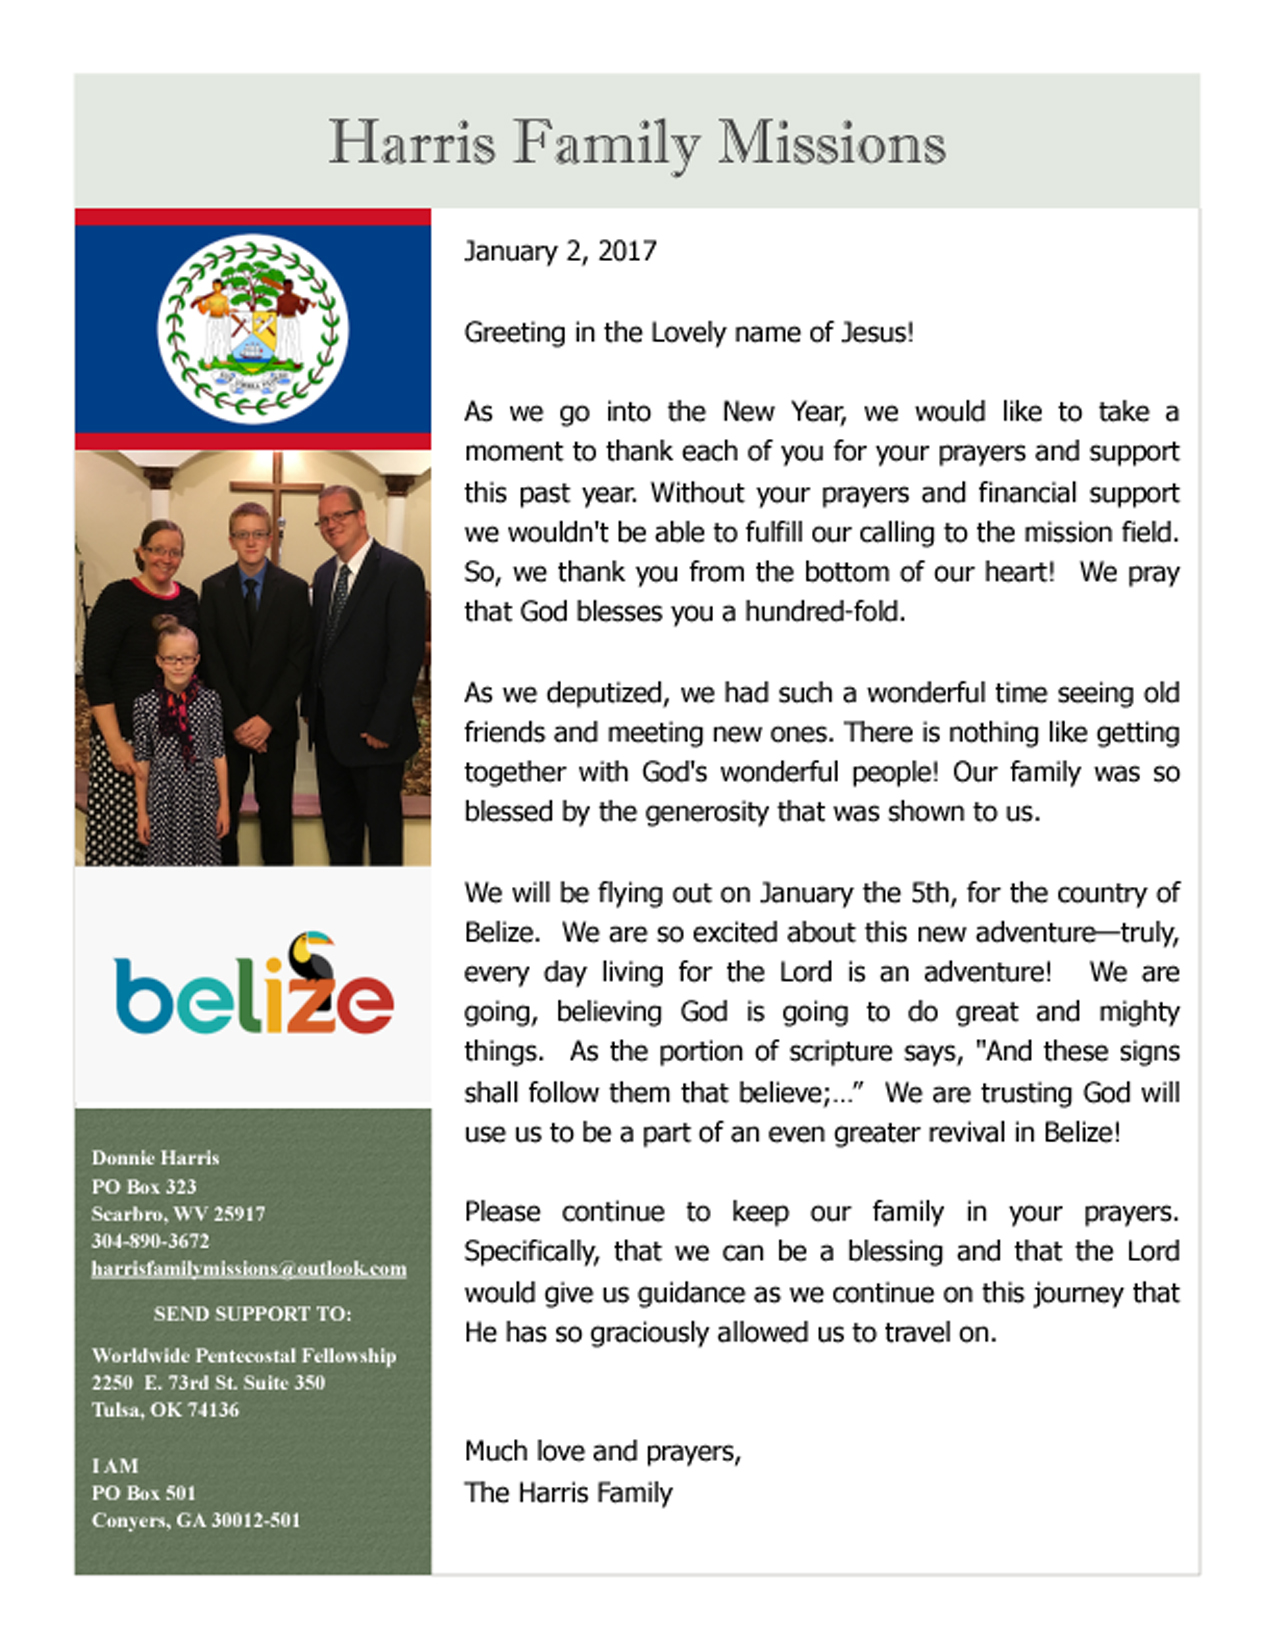 Belize – Missionary Donnie Harris